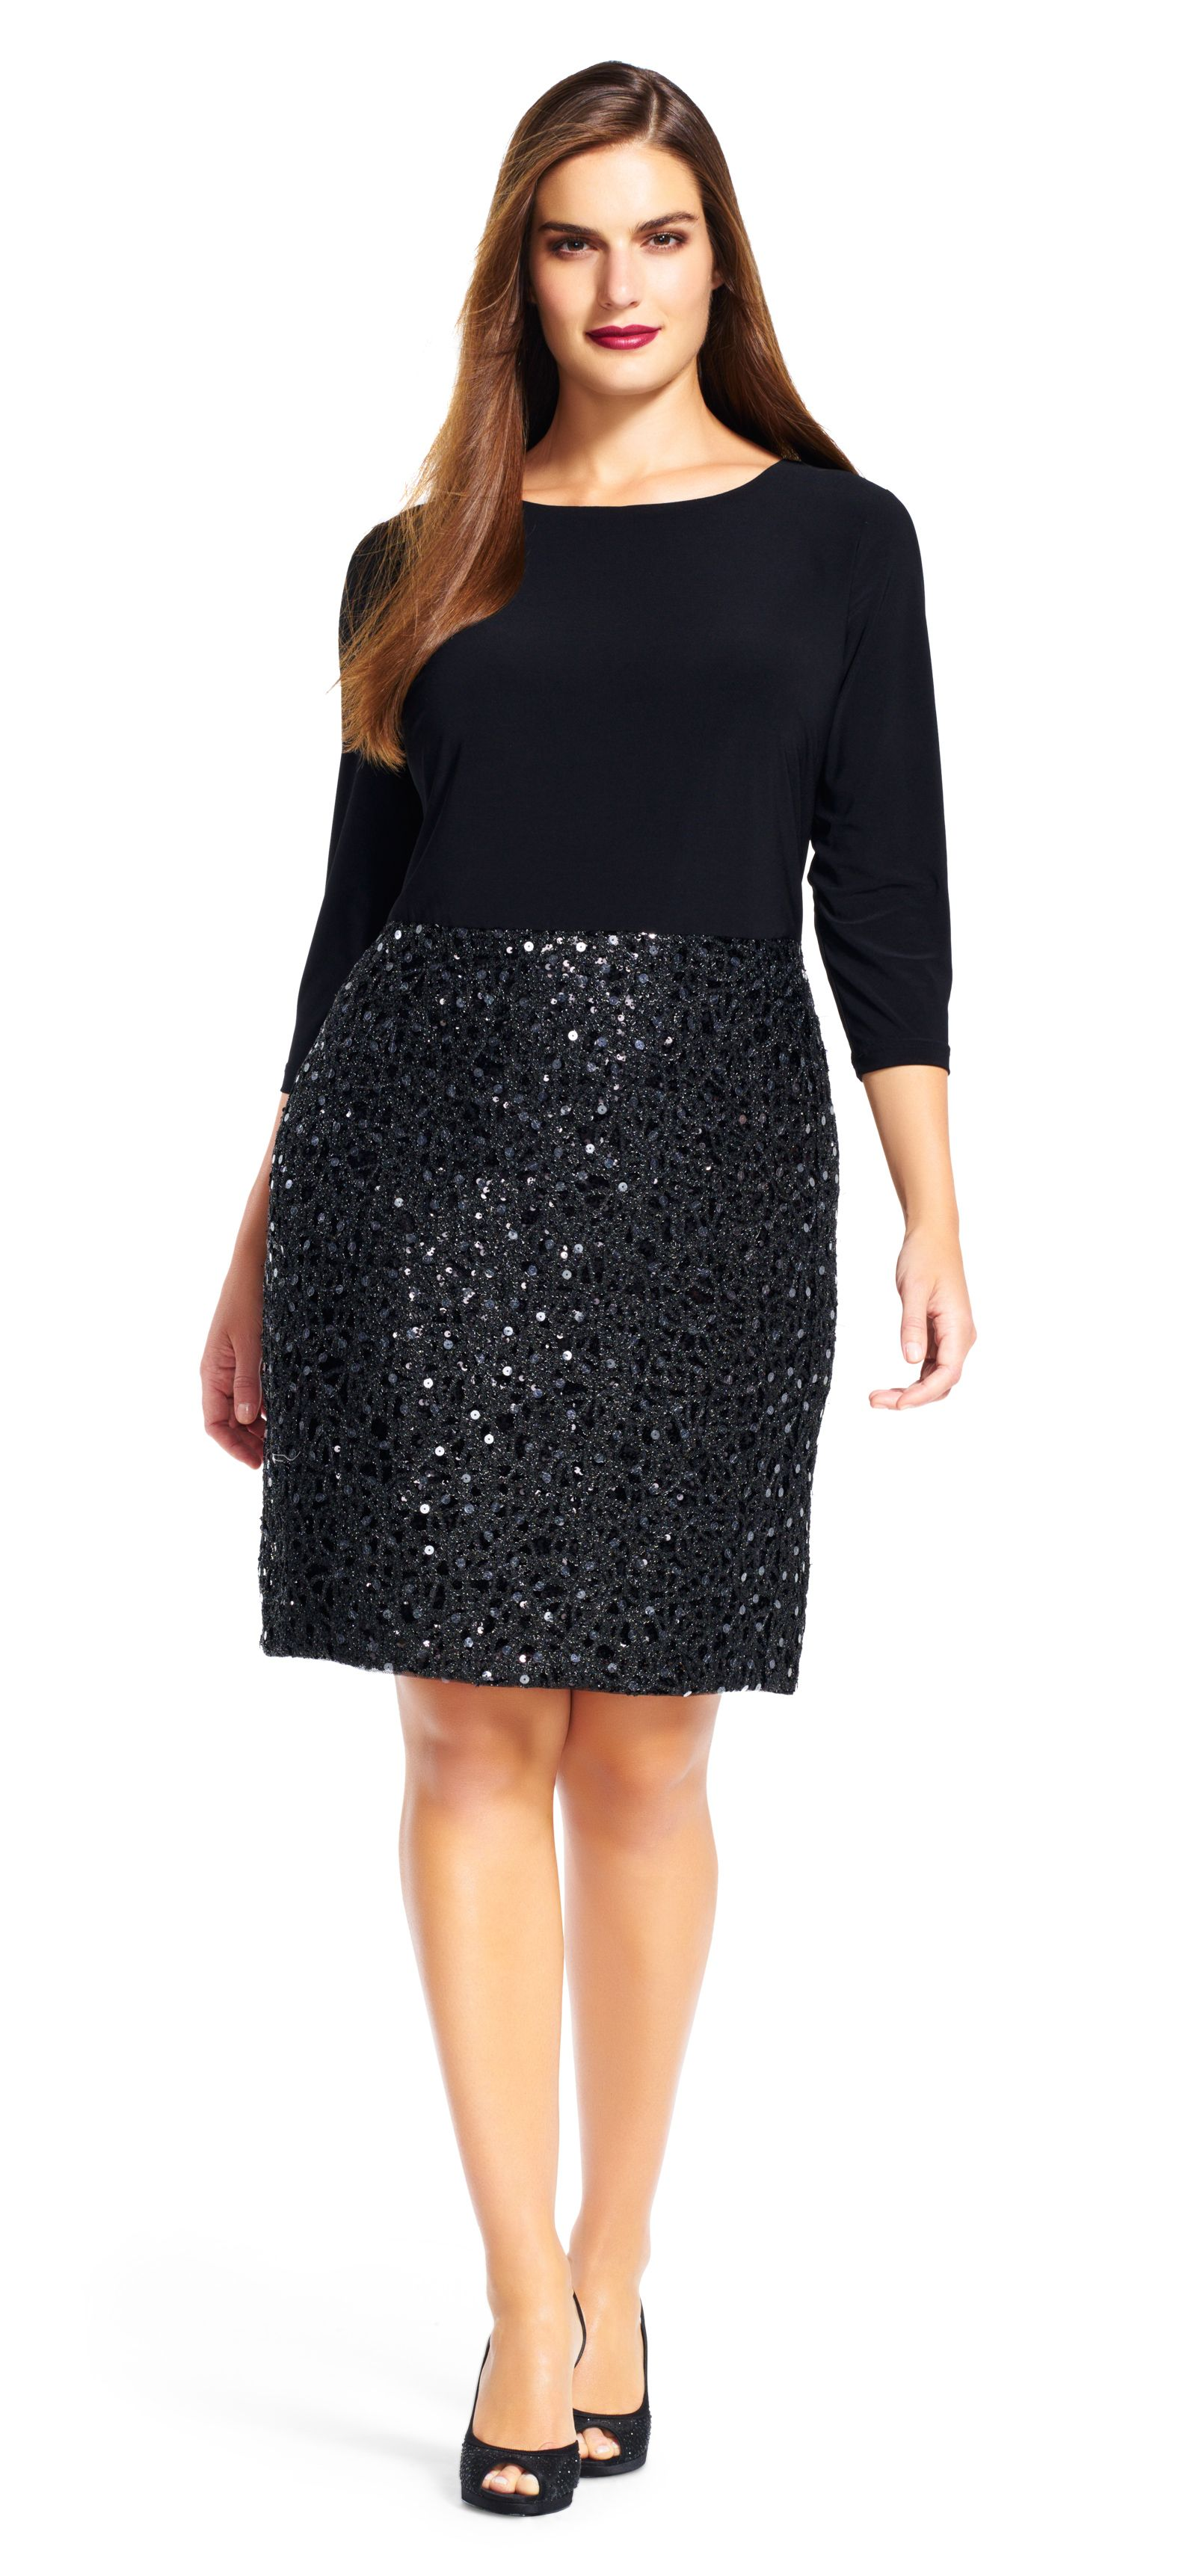 Adrianna Papell three quarter sleeve dress with sequin mesh skirt ...